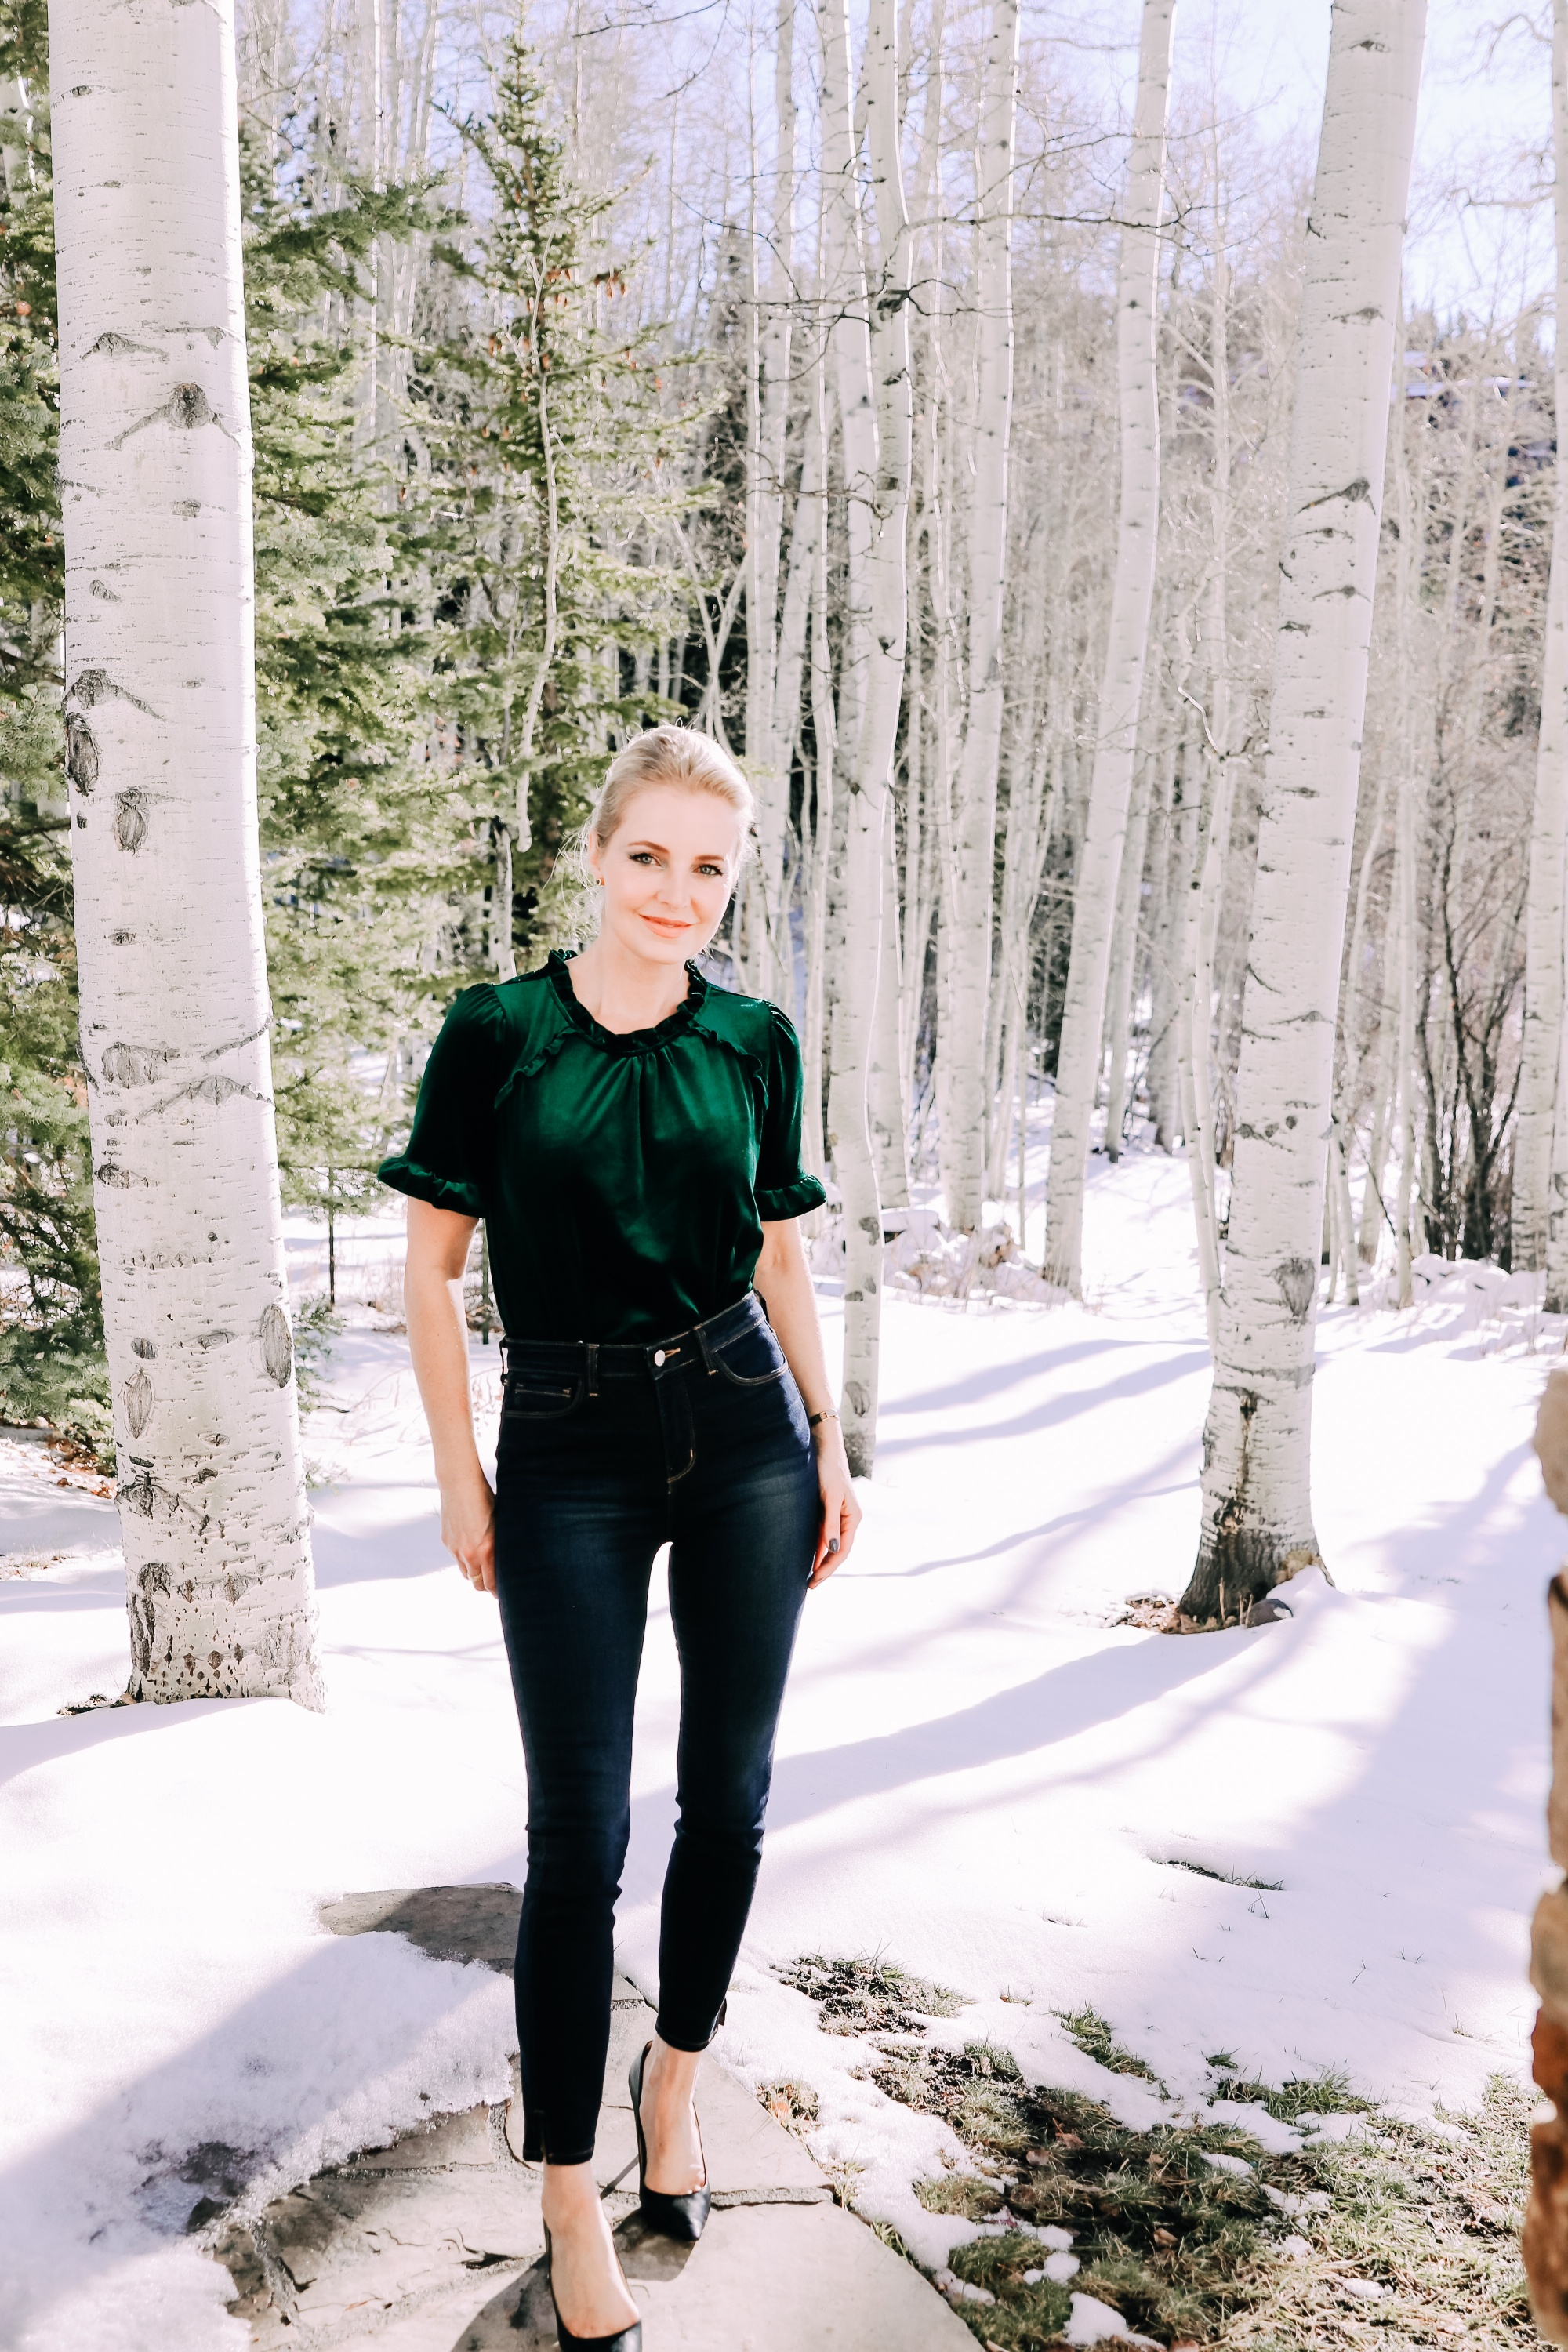 Holiday Outfits With Jeans, Erin Busbee of Busbee Style wearing a green velvet ruffle sleeve blouse by Gibson, L'Agence dark wash skinny jeans, and black Jimmy Choo Romy pumps from Nordstrom outside in the snow in Telluride, Colorado